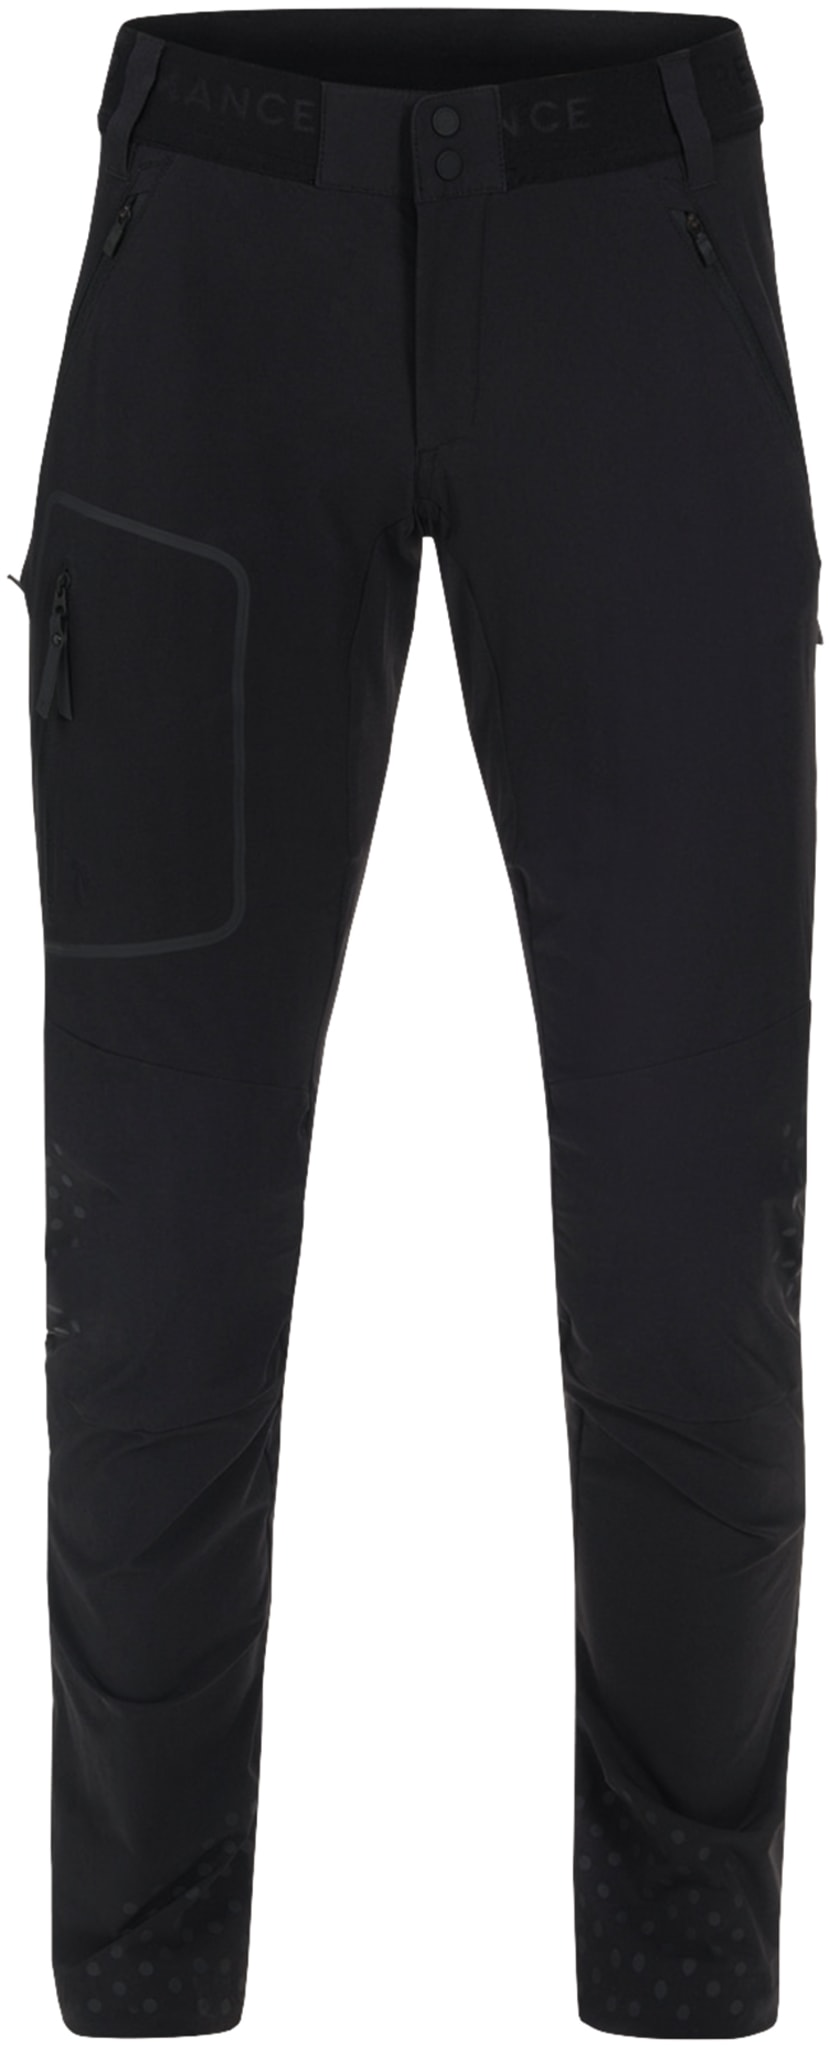 Light Softshell Pant W